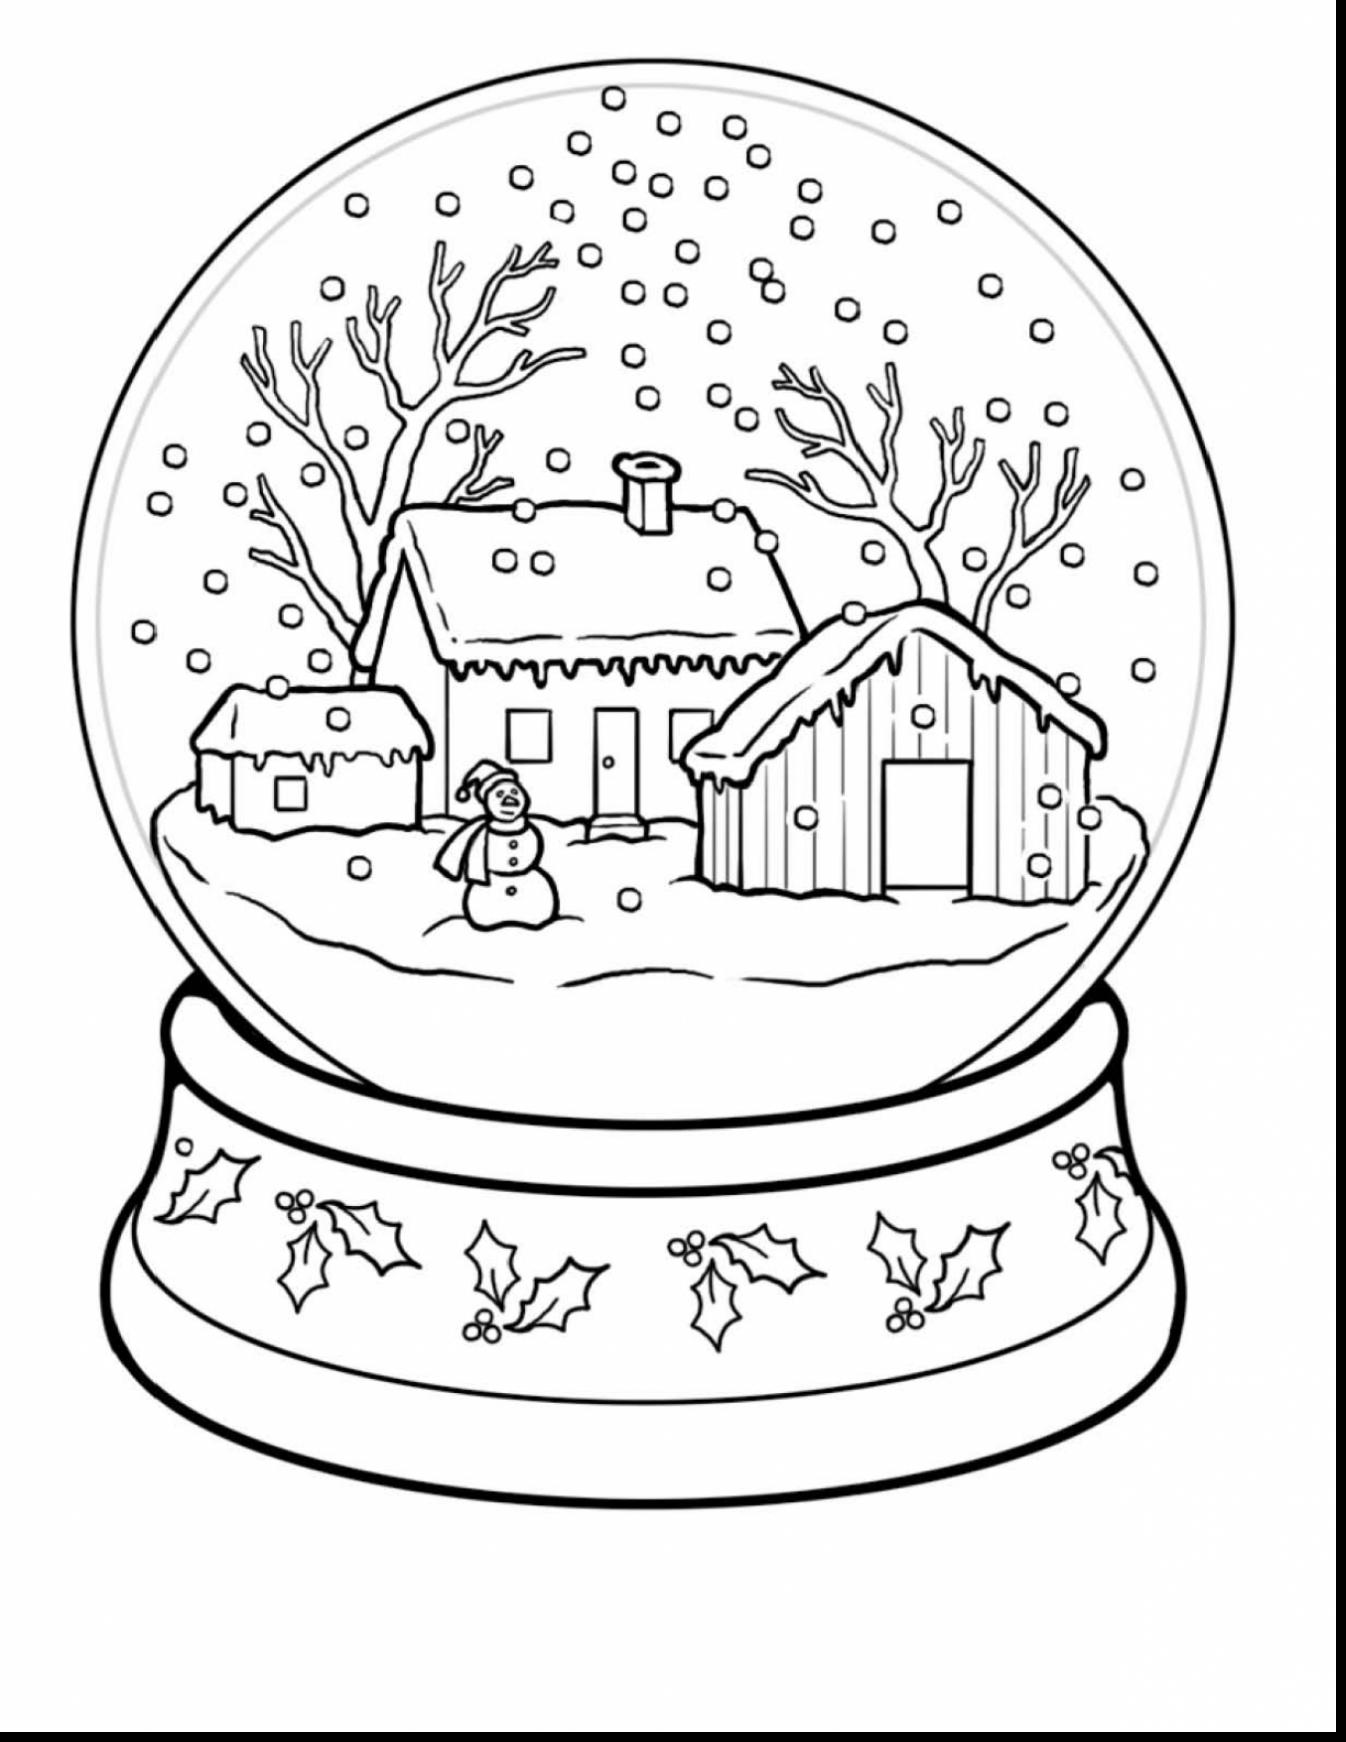 Snow Landscape Drawing at GetDrawings.com | Free for personal use ...